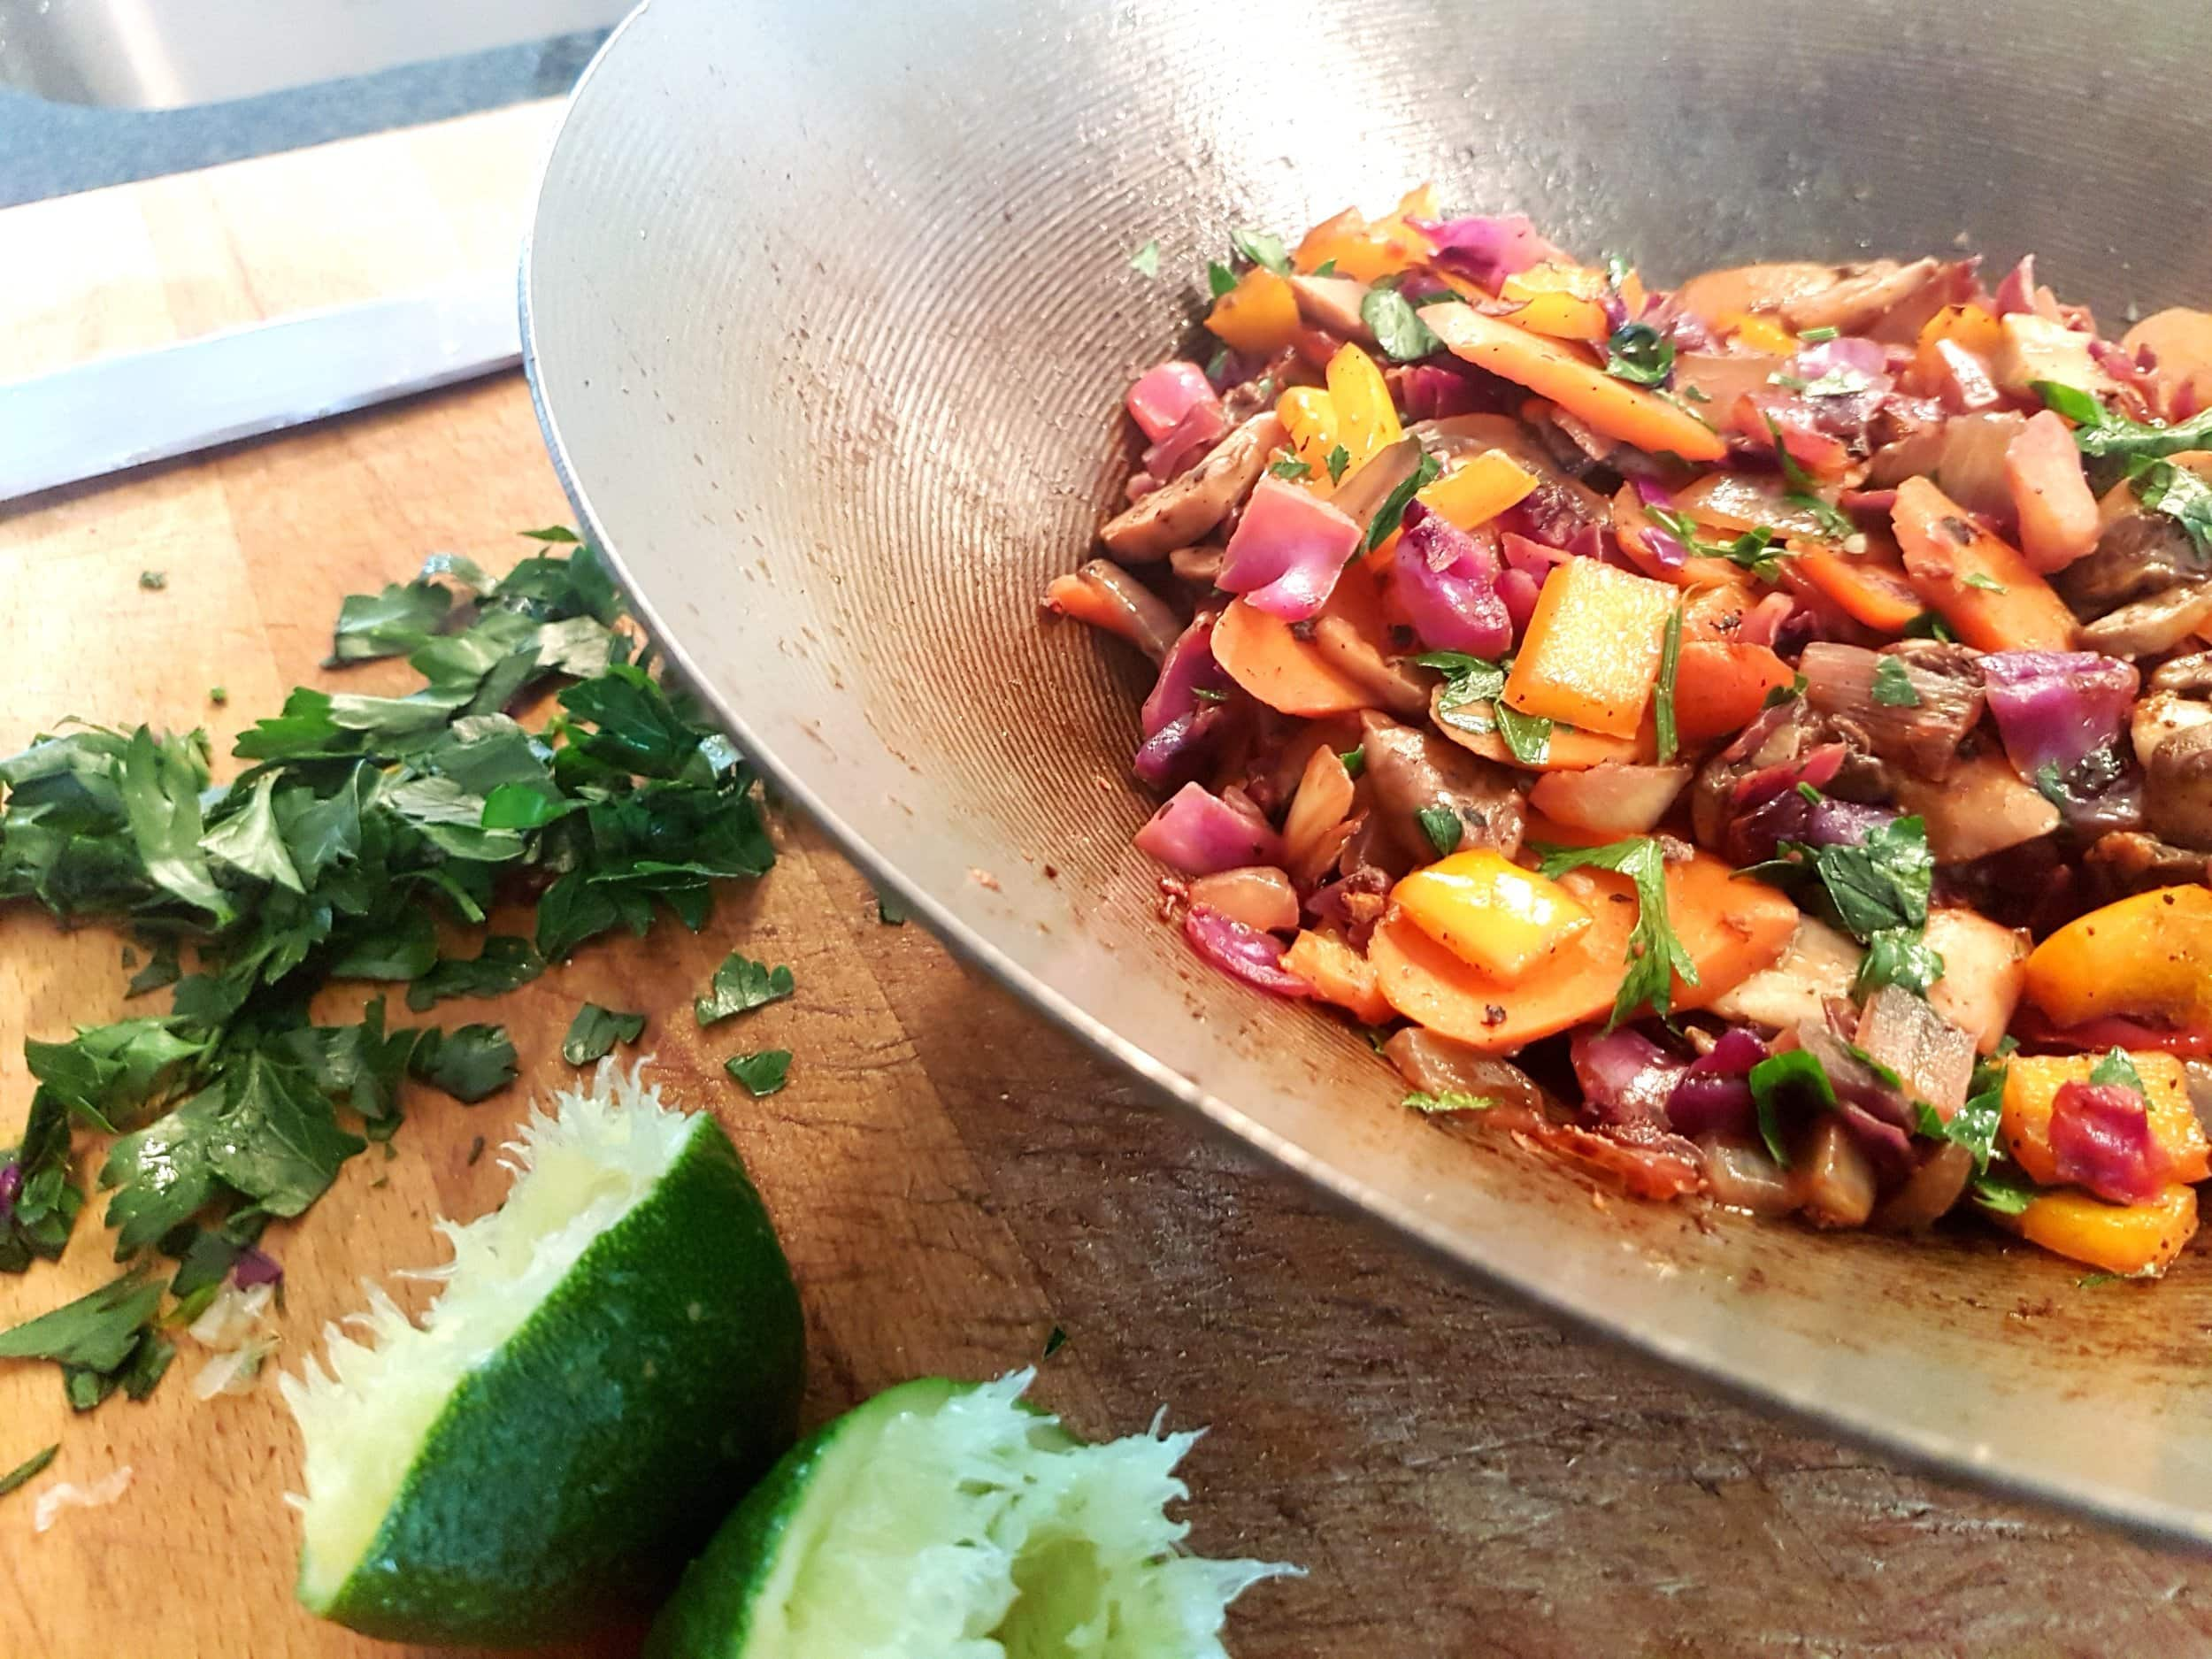 Freshly cooked vegetables in a wok with parsley and lime.